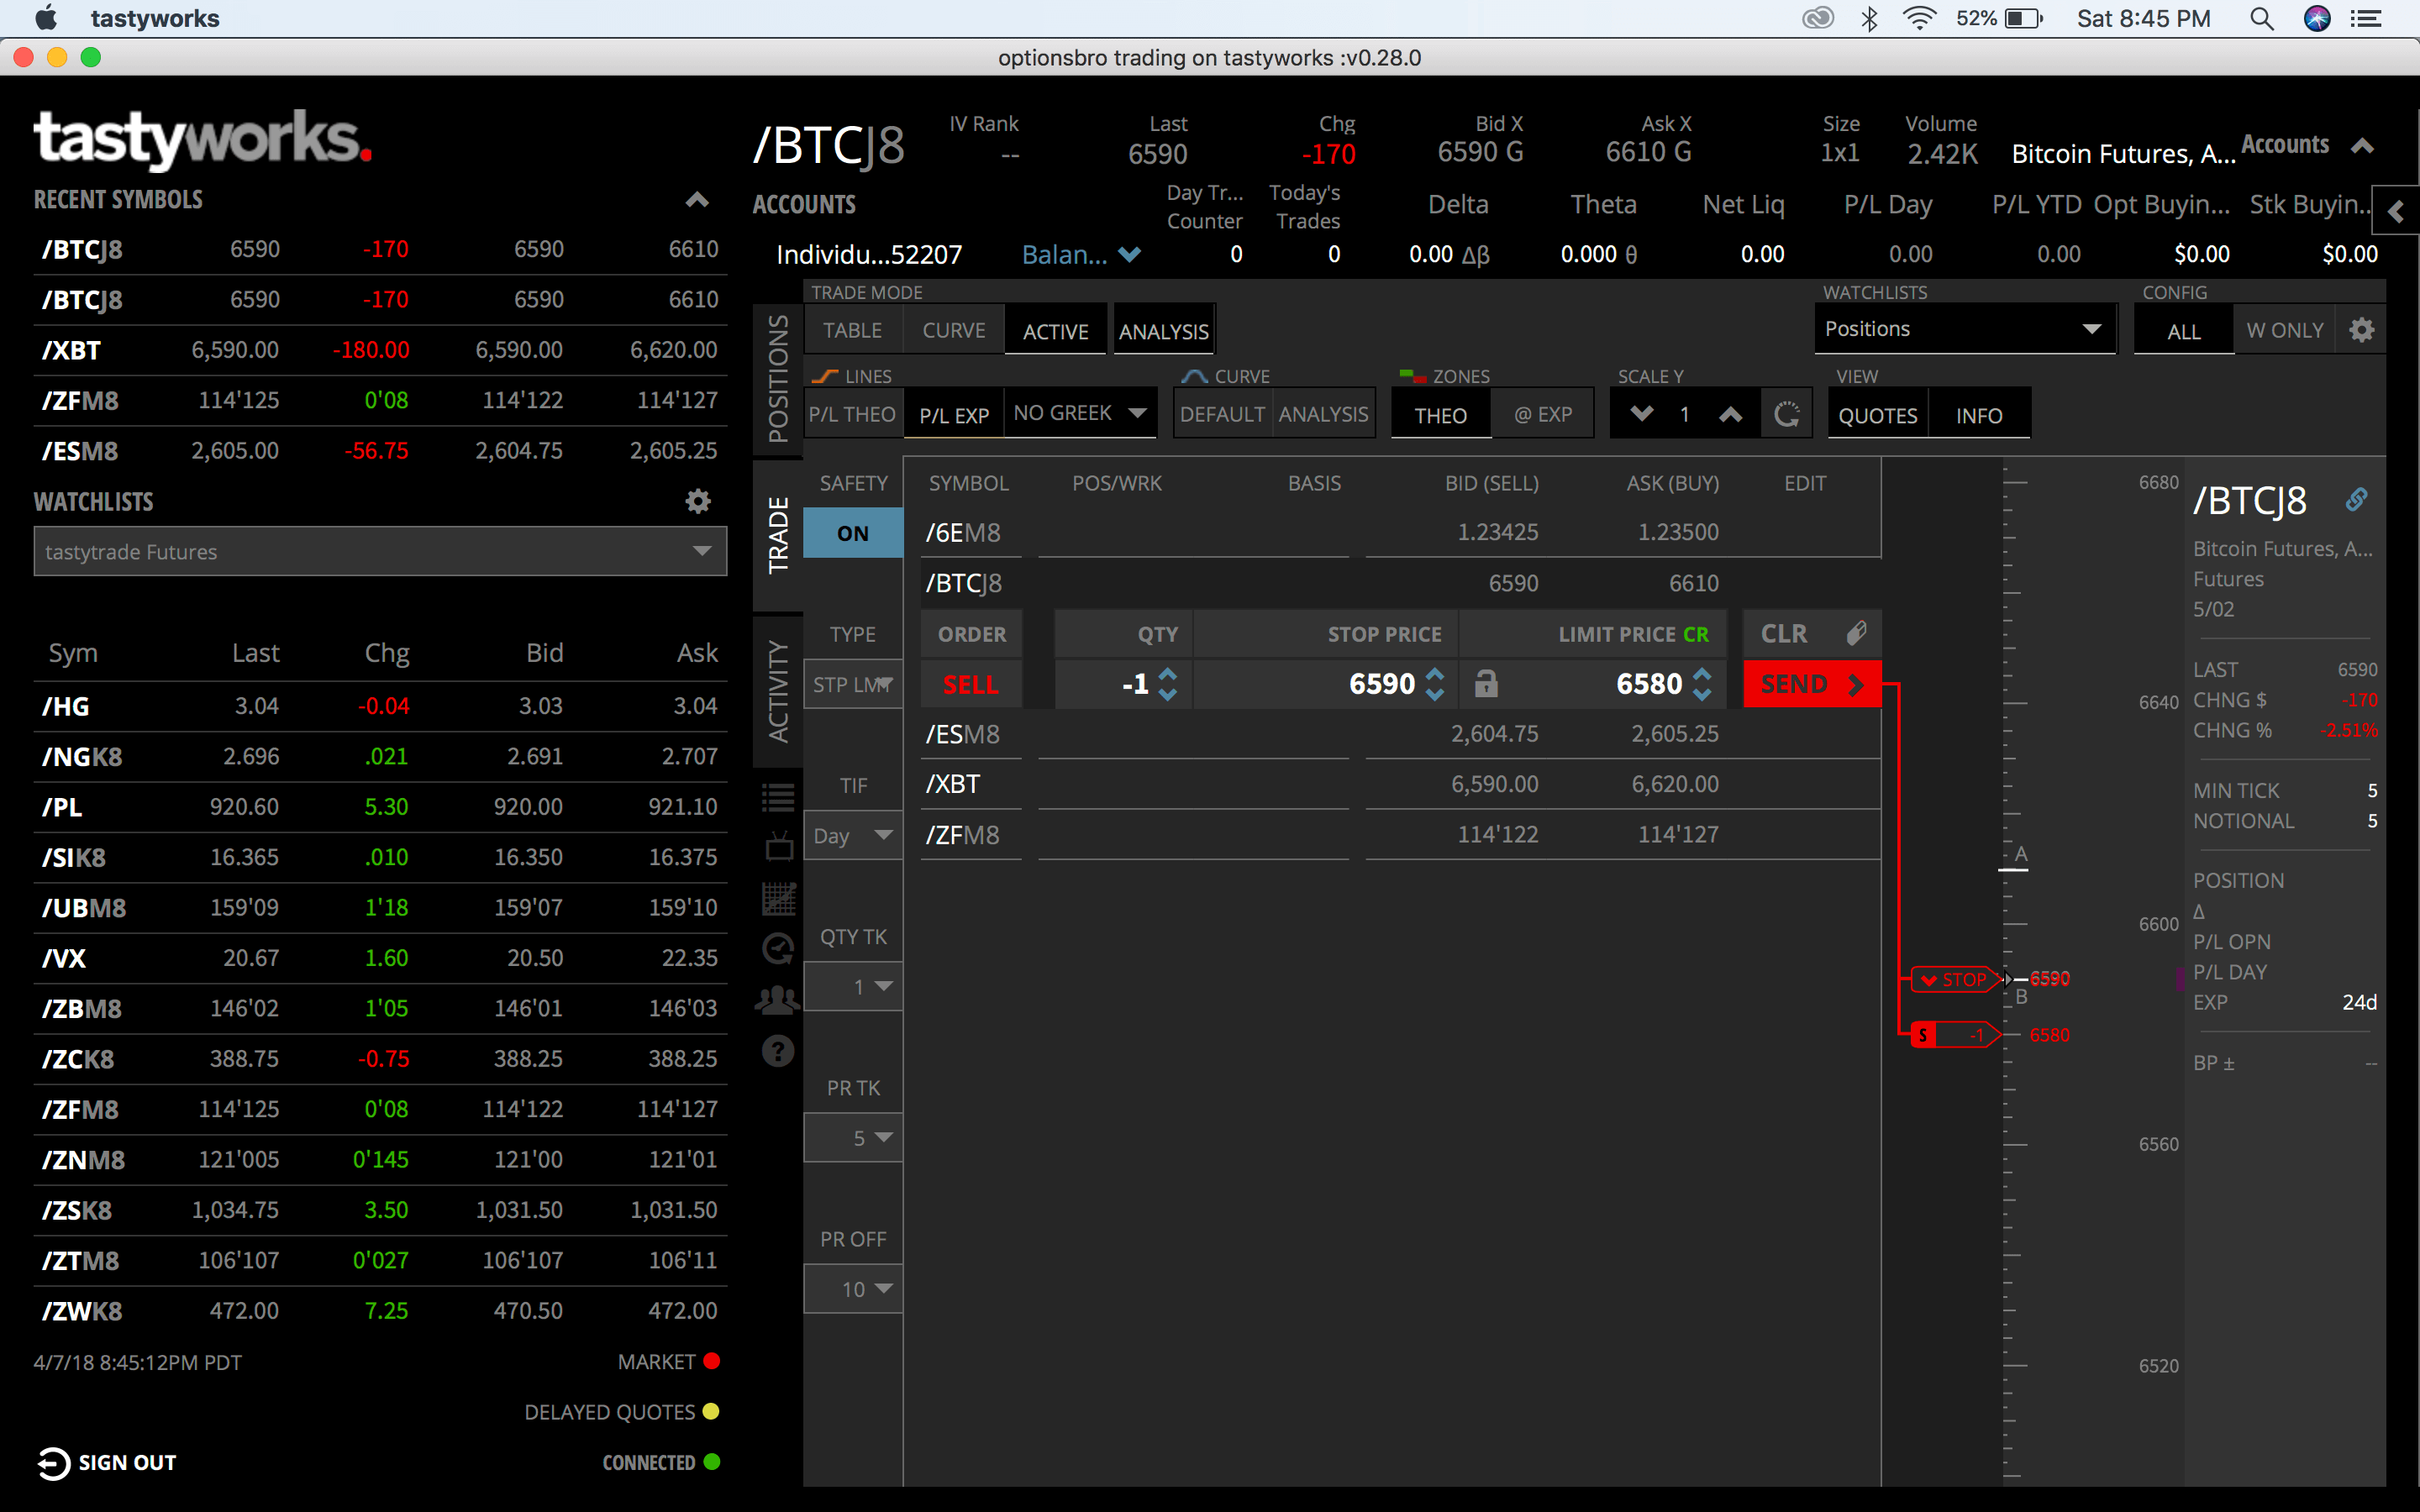 Trading bitcoin futures with tastyworks